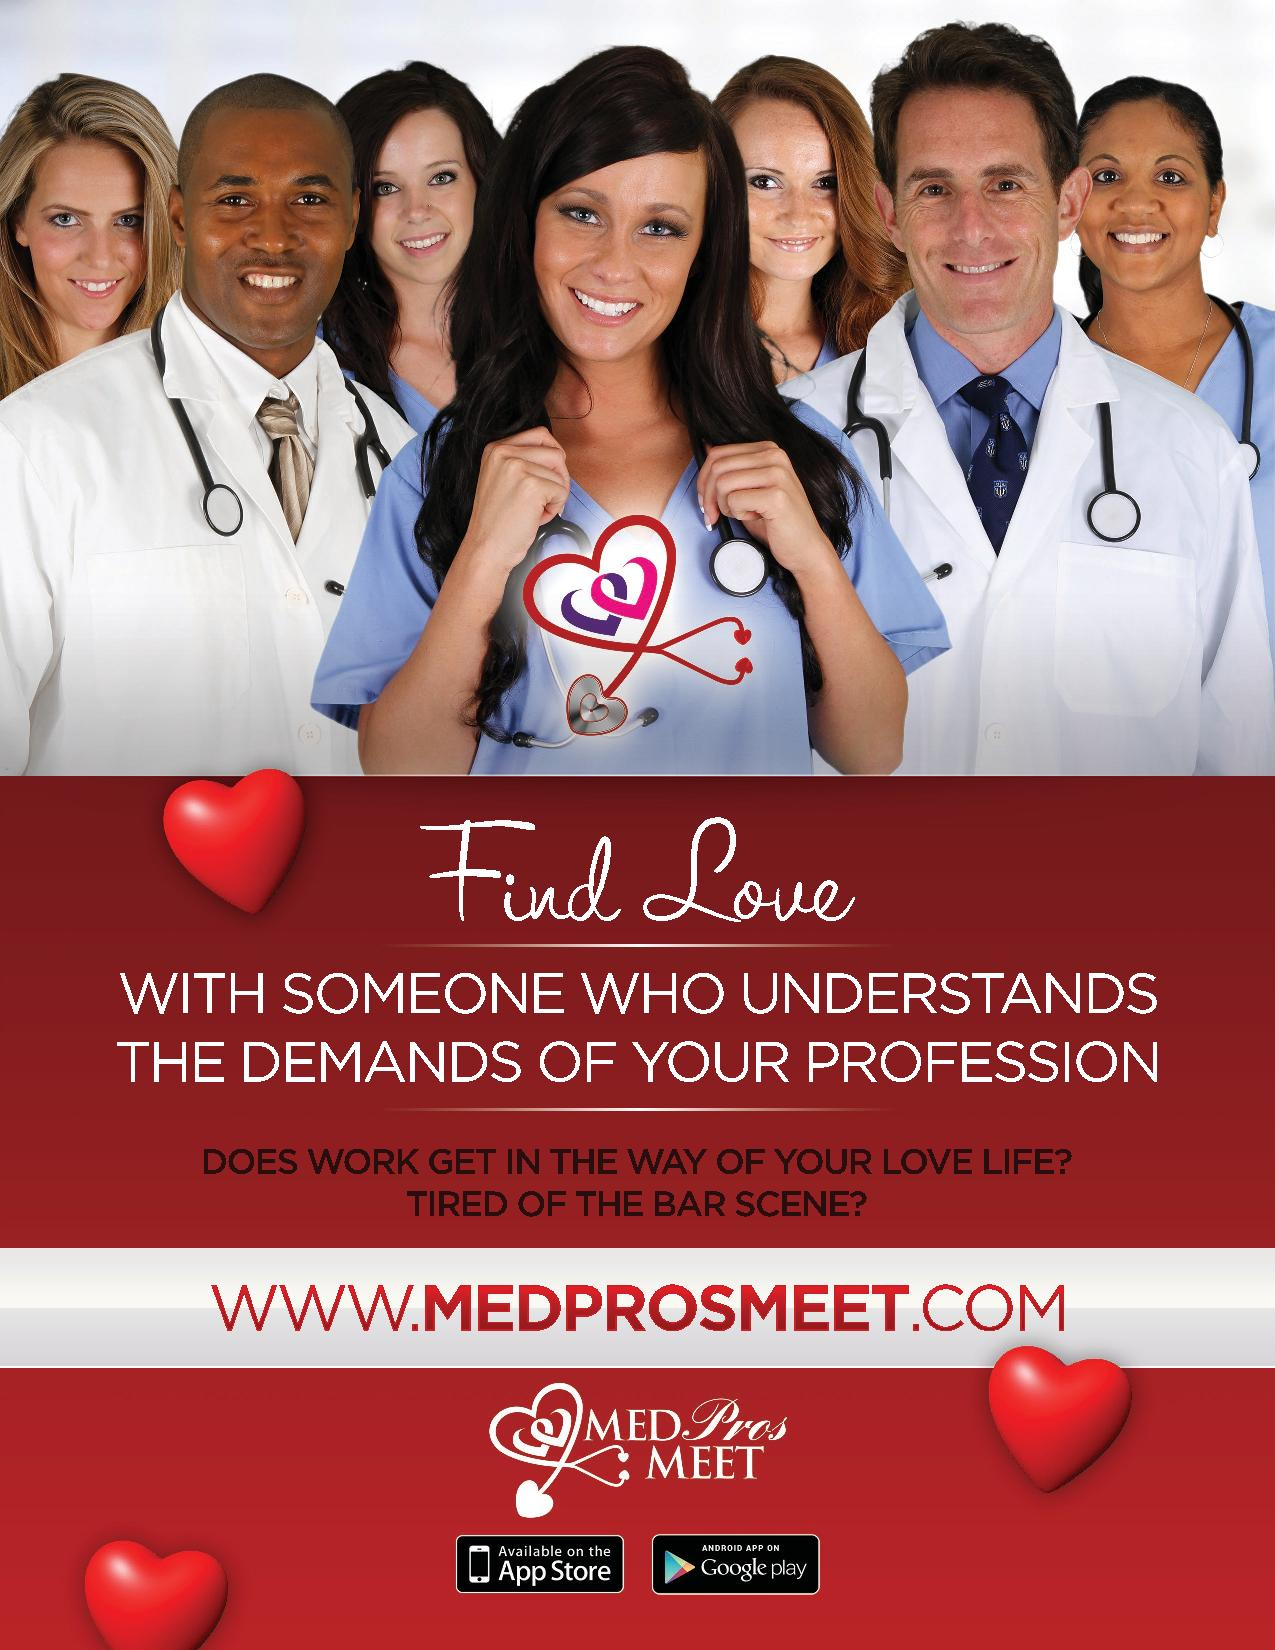 Online dating sites for medical professionals